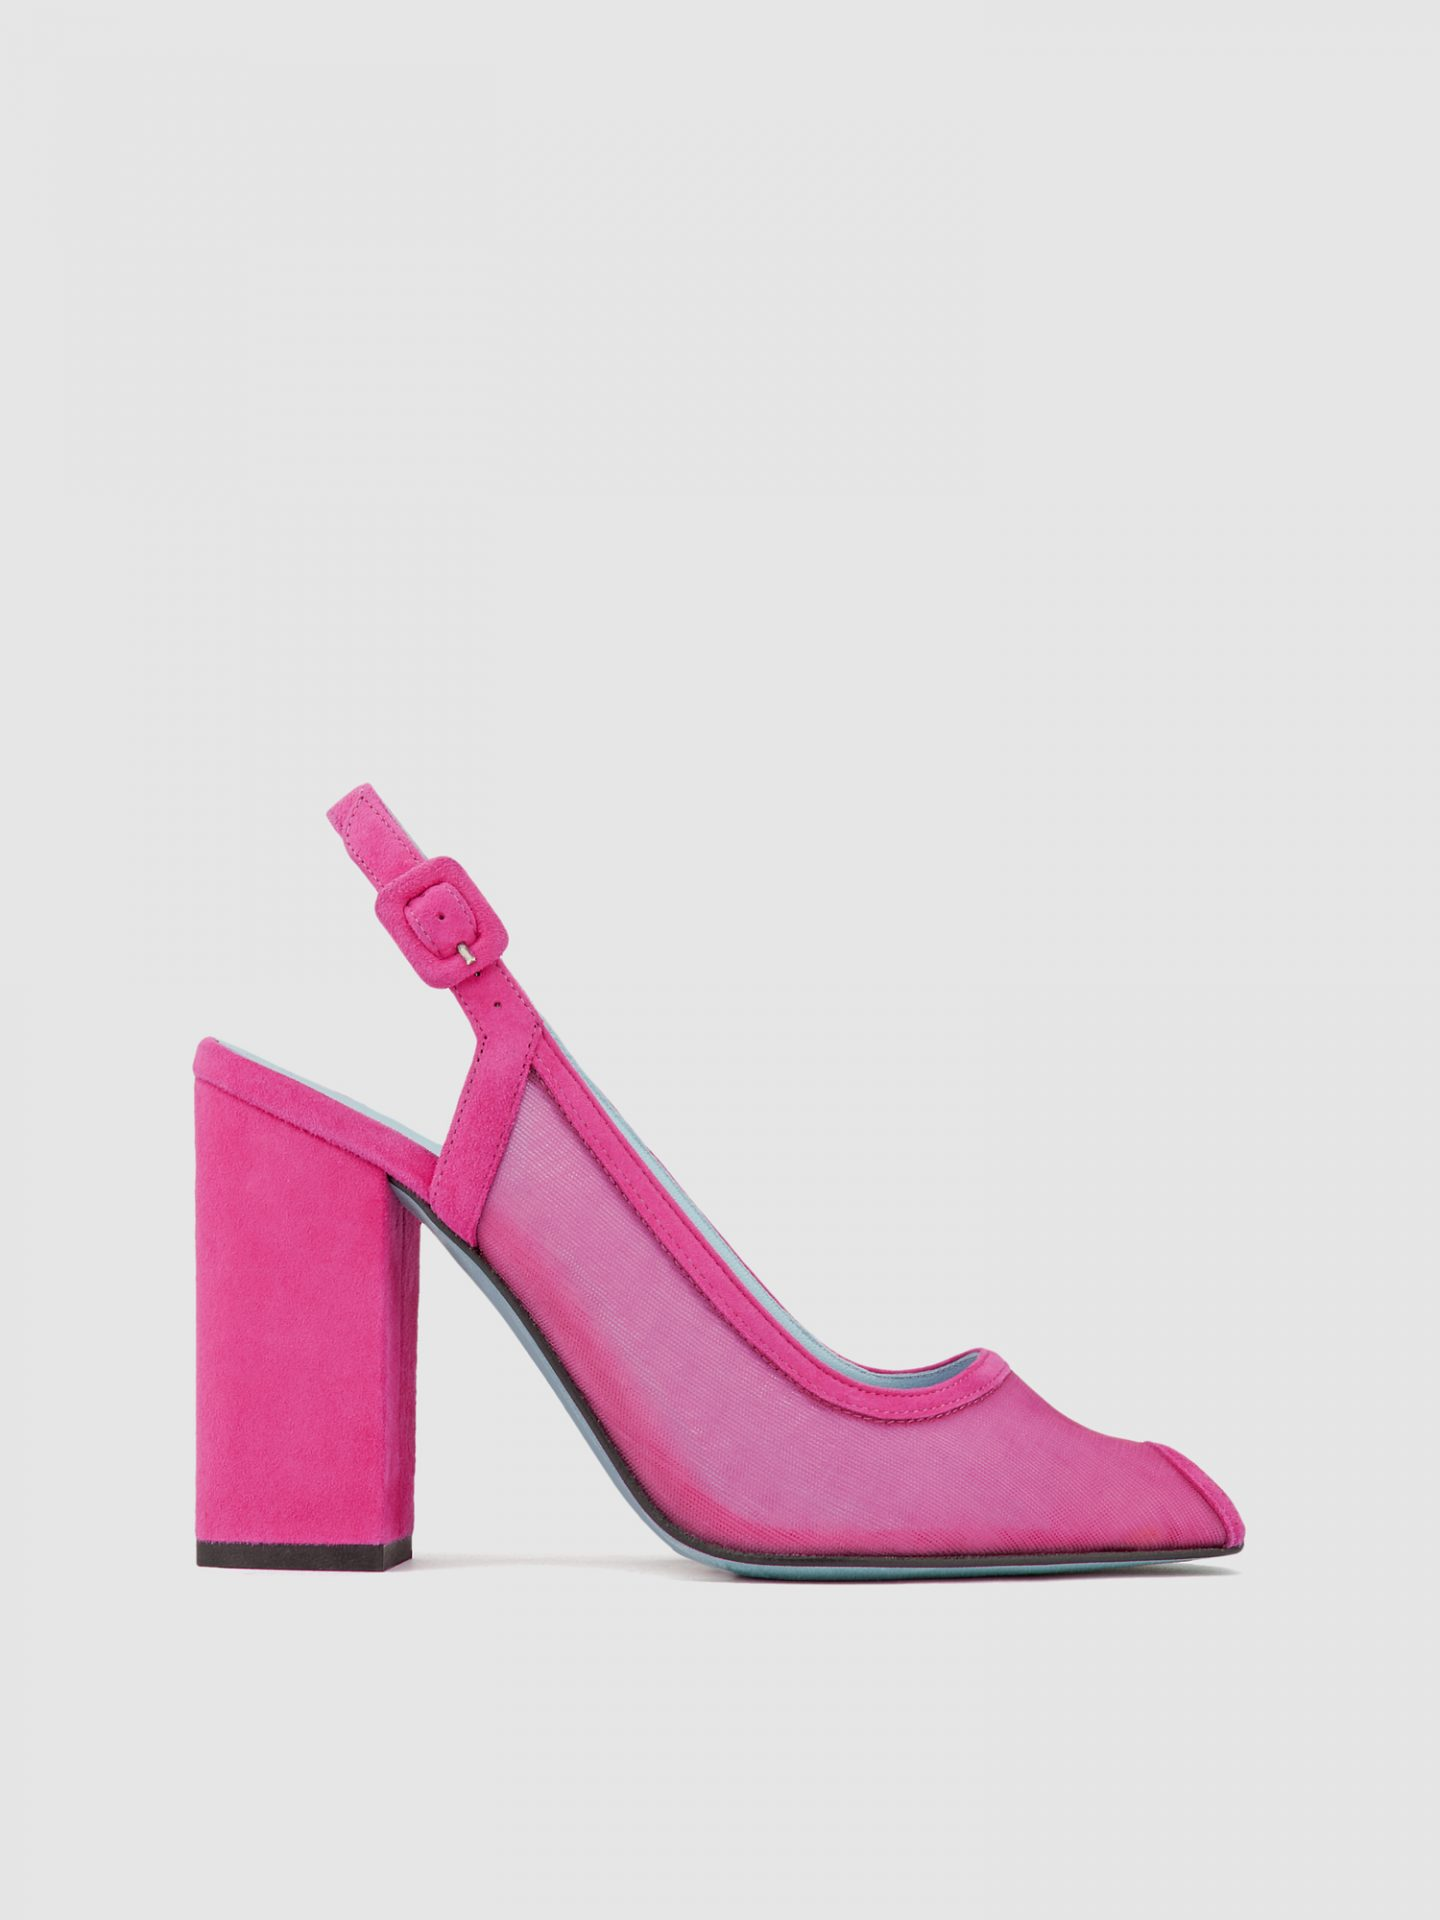 Eaubonne- Heel Height: 100